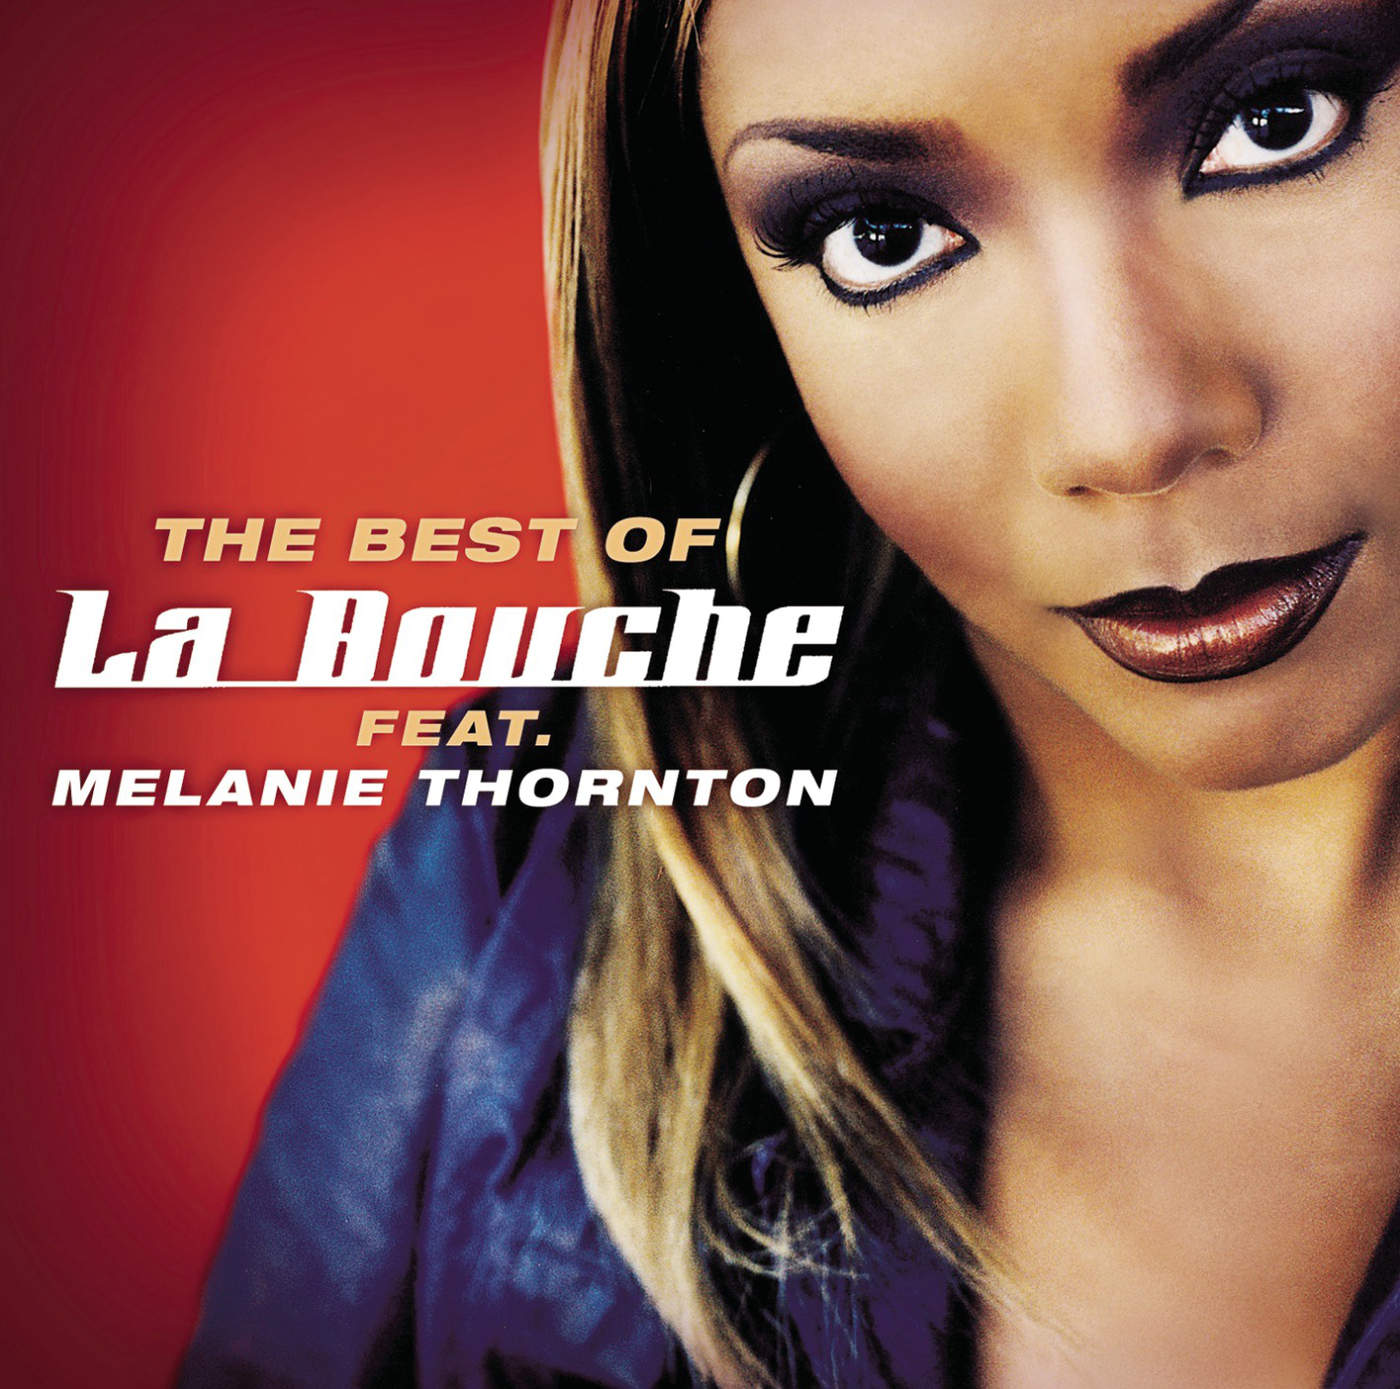 Art for Be My Lover by La Bouche